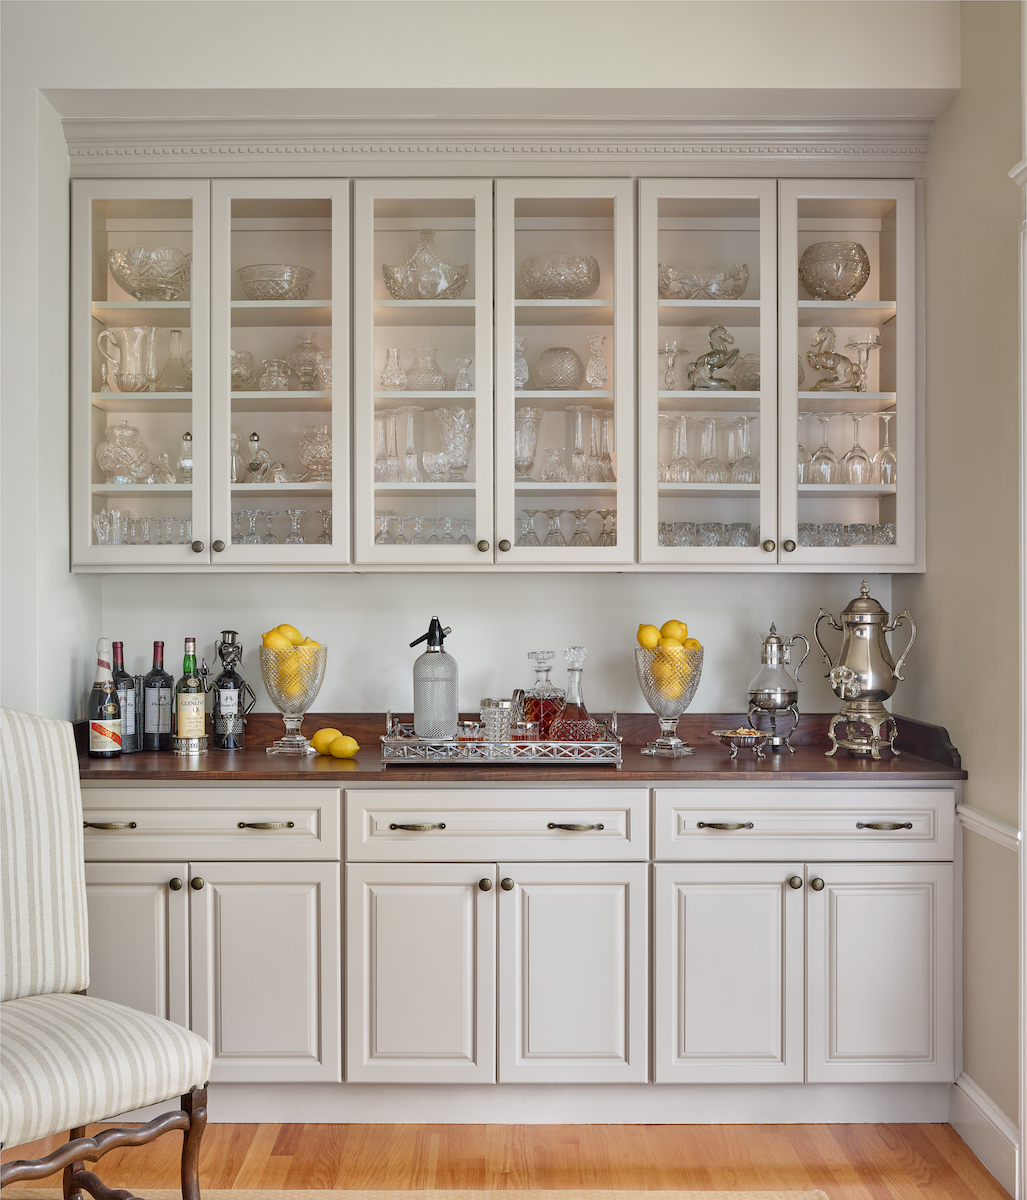 dining-room-bar-glass-cabinets-shelving-with-lighting